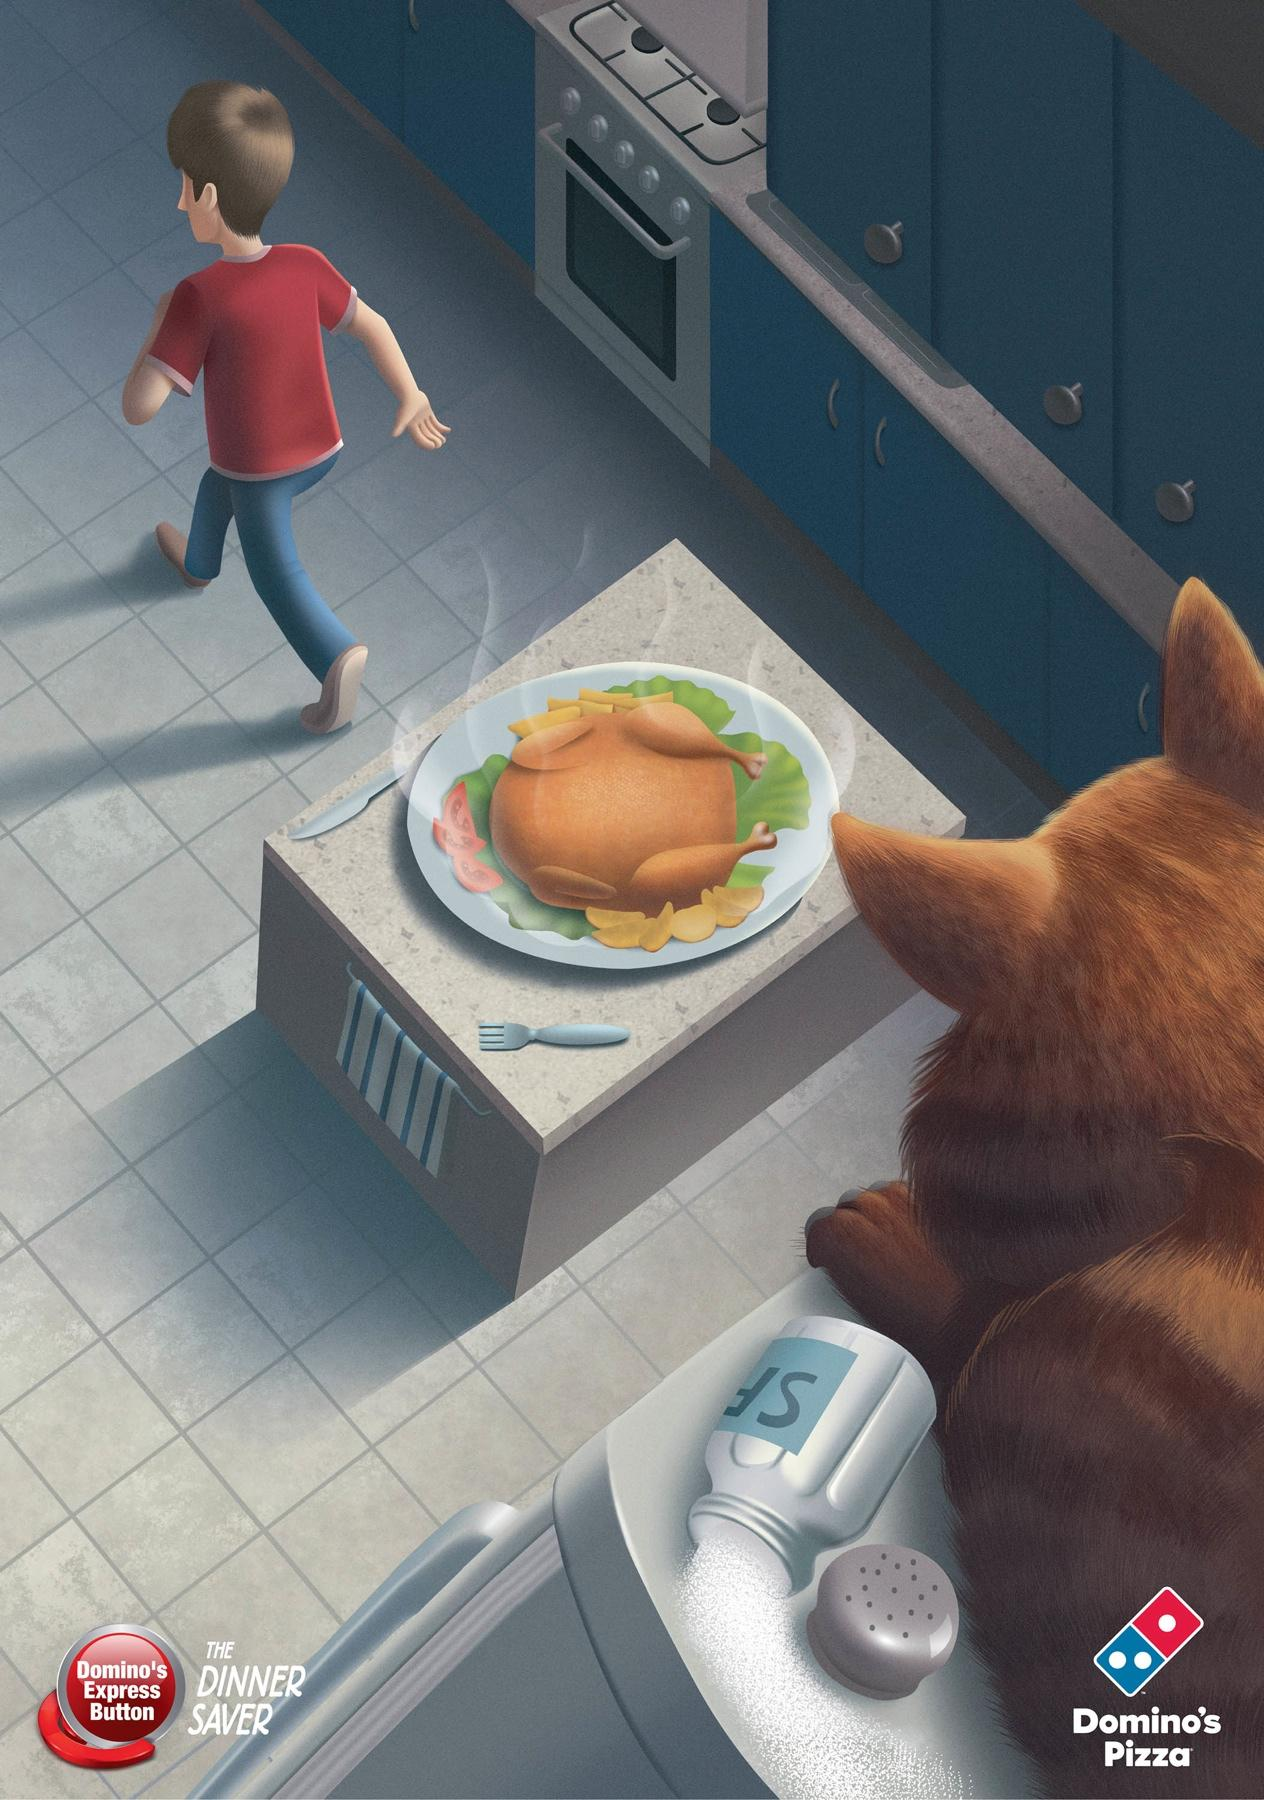 Domino's Pizza Print Ad -  The Dinner Saver, 2